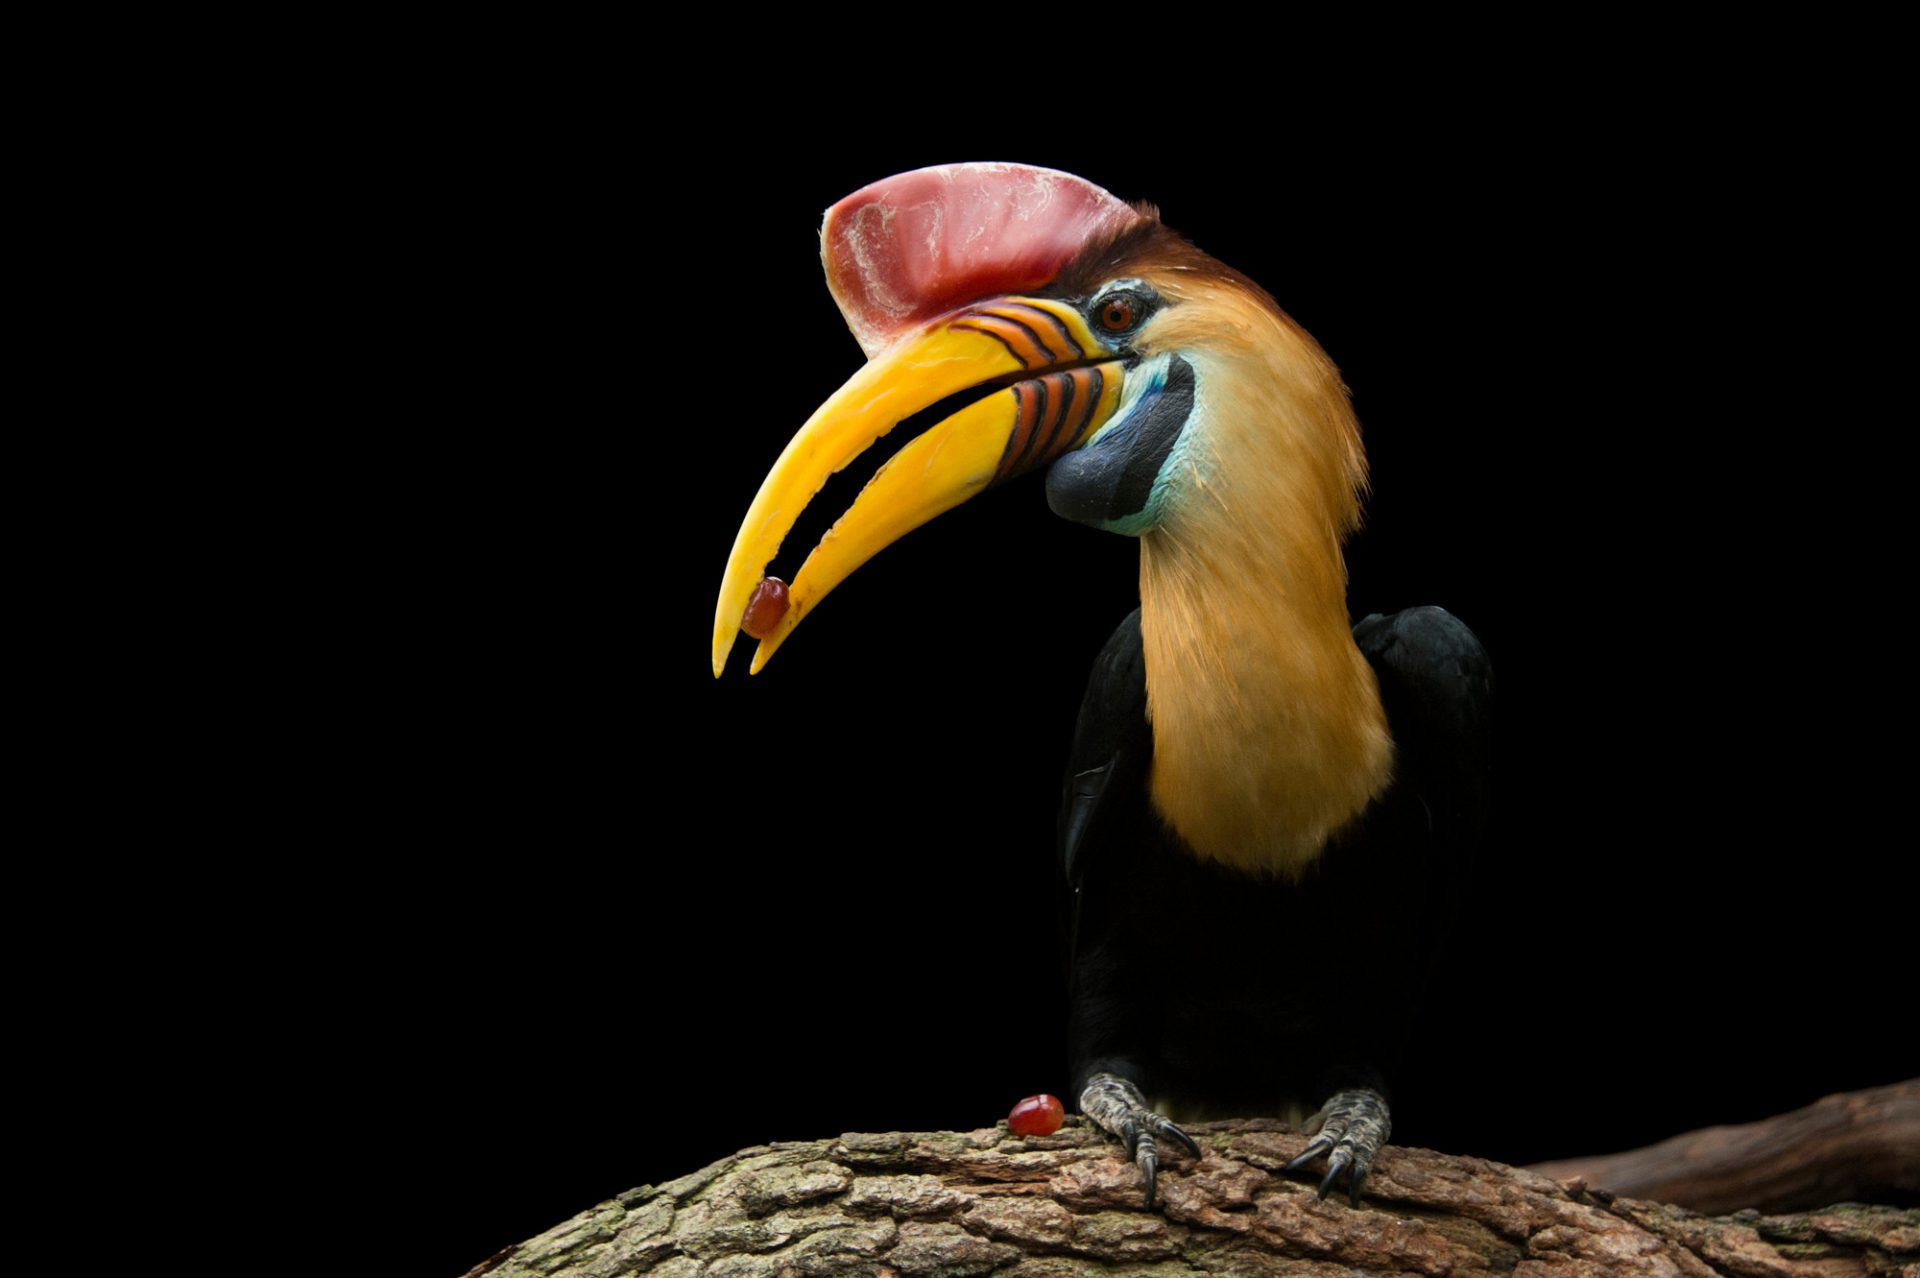 A red-knobbed hornbill (Rhyticeros cassidix) named Kong at the St. Augustine Alligator Farm.